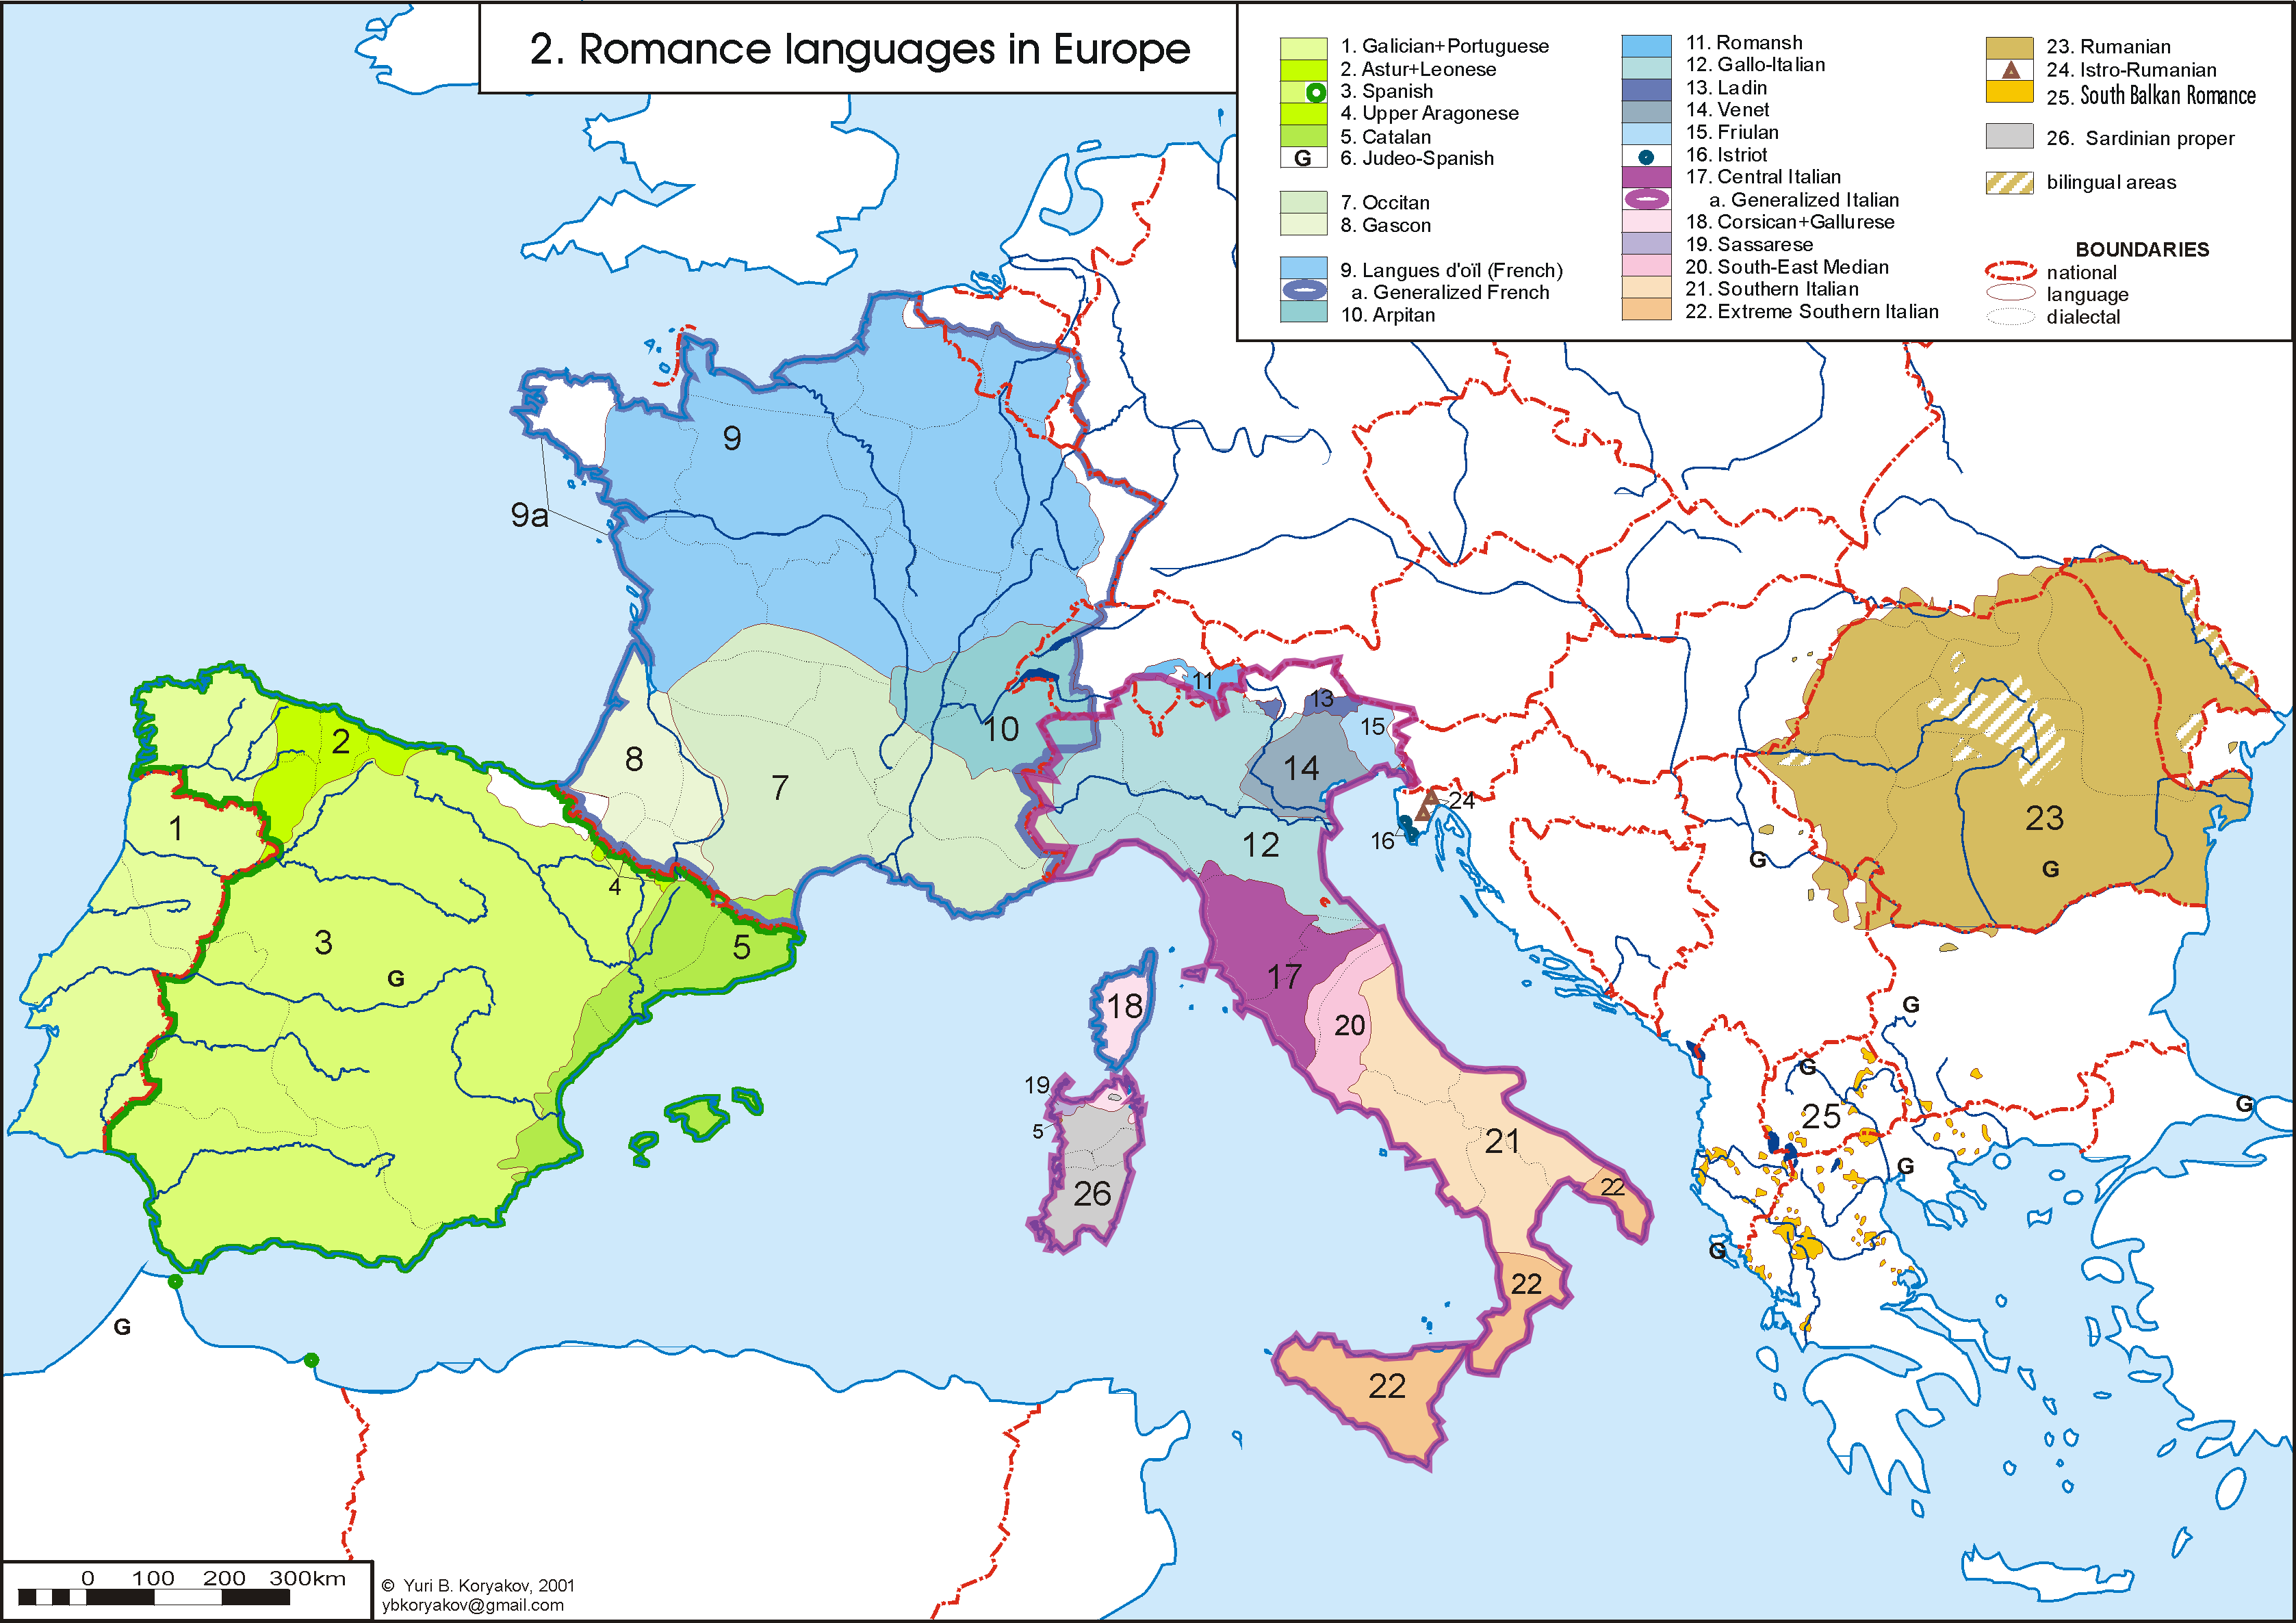 The Romance languages in Europe